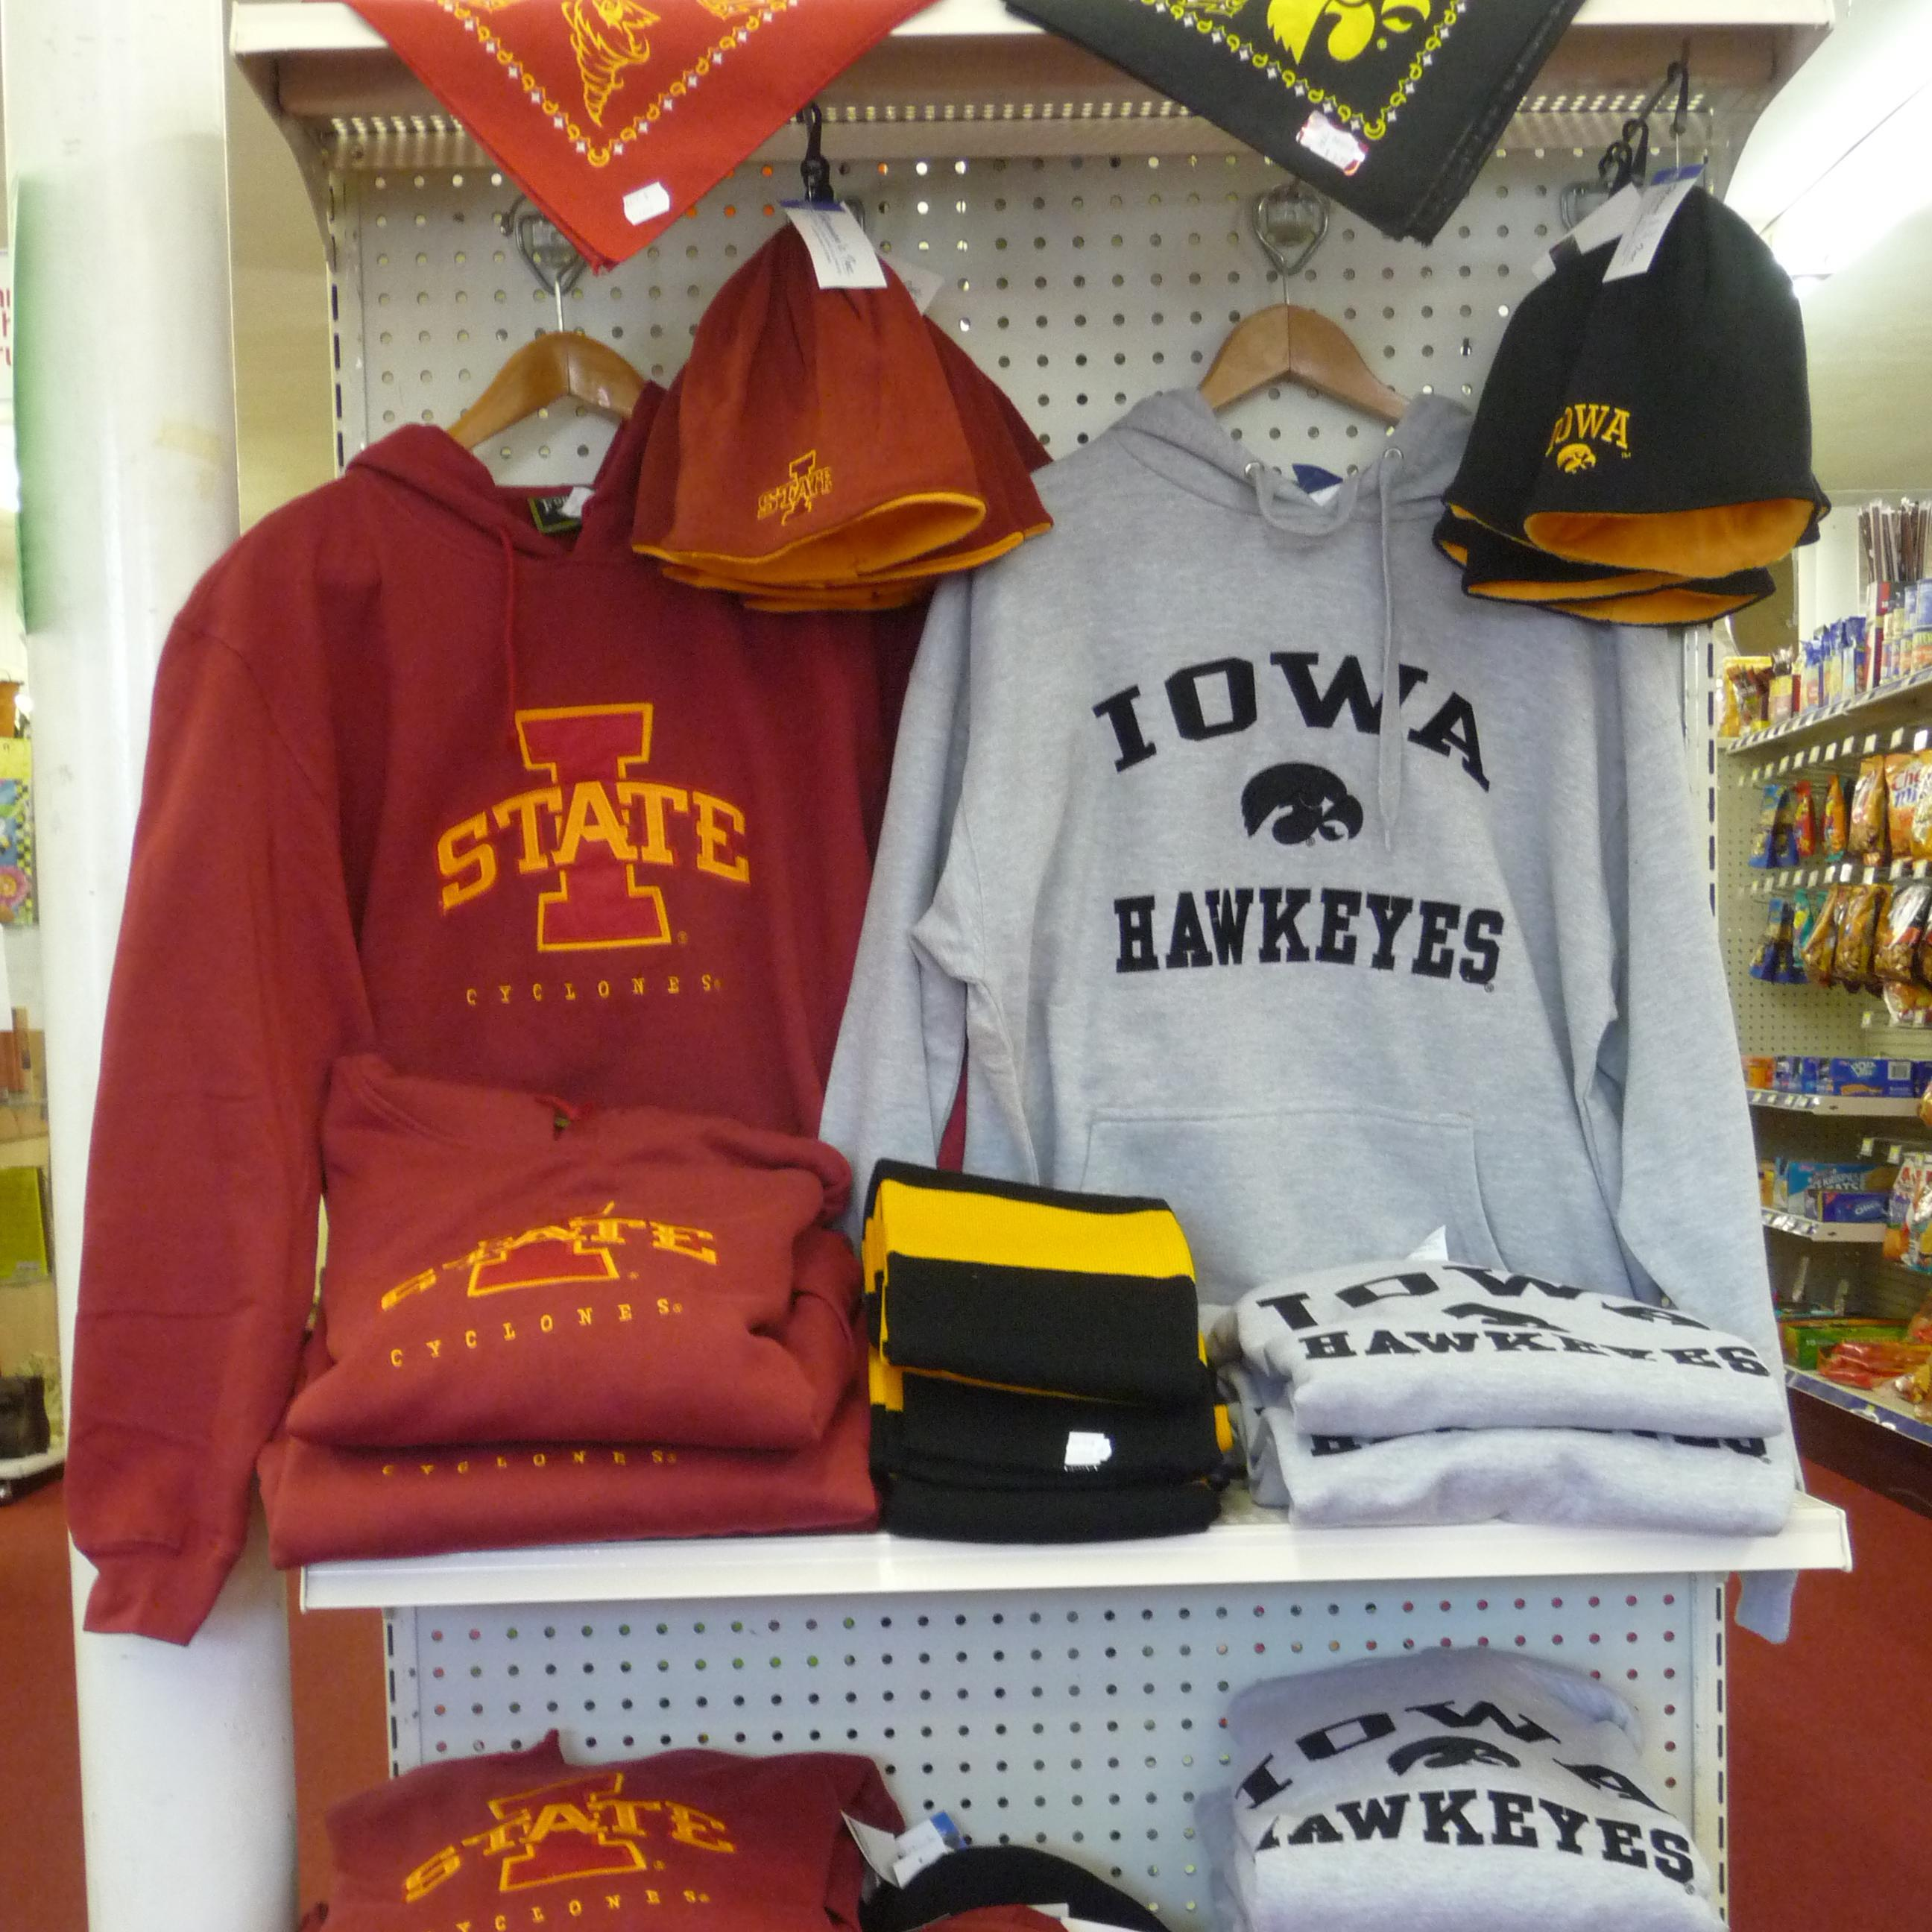 Iowa Iowa State clothing, apparel and giftware